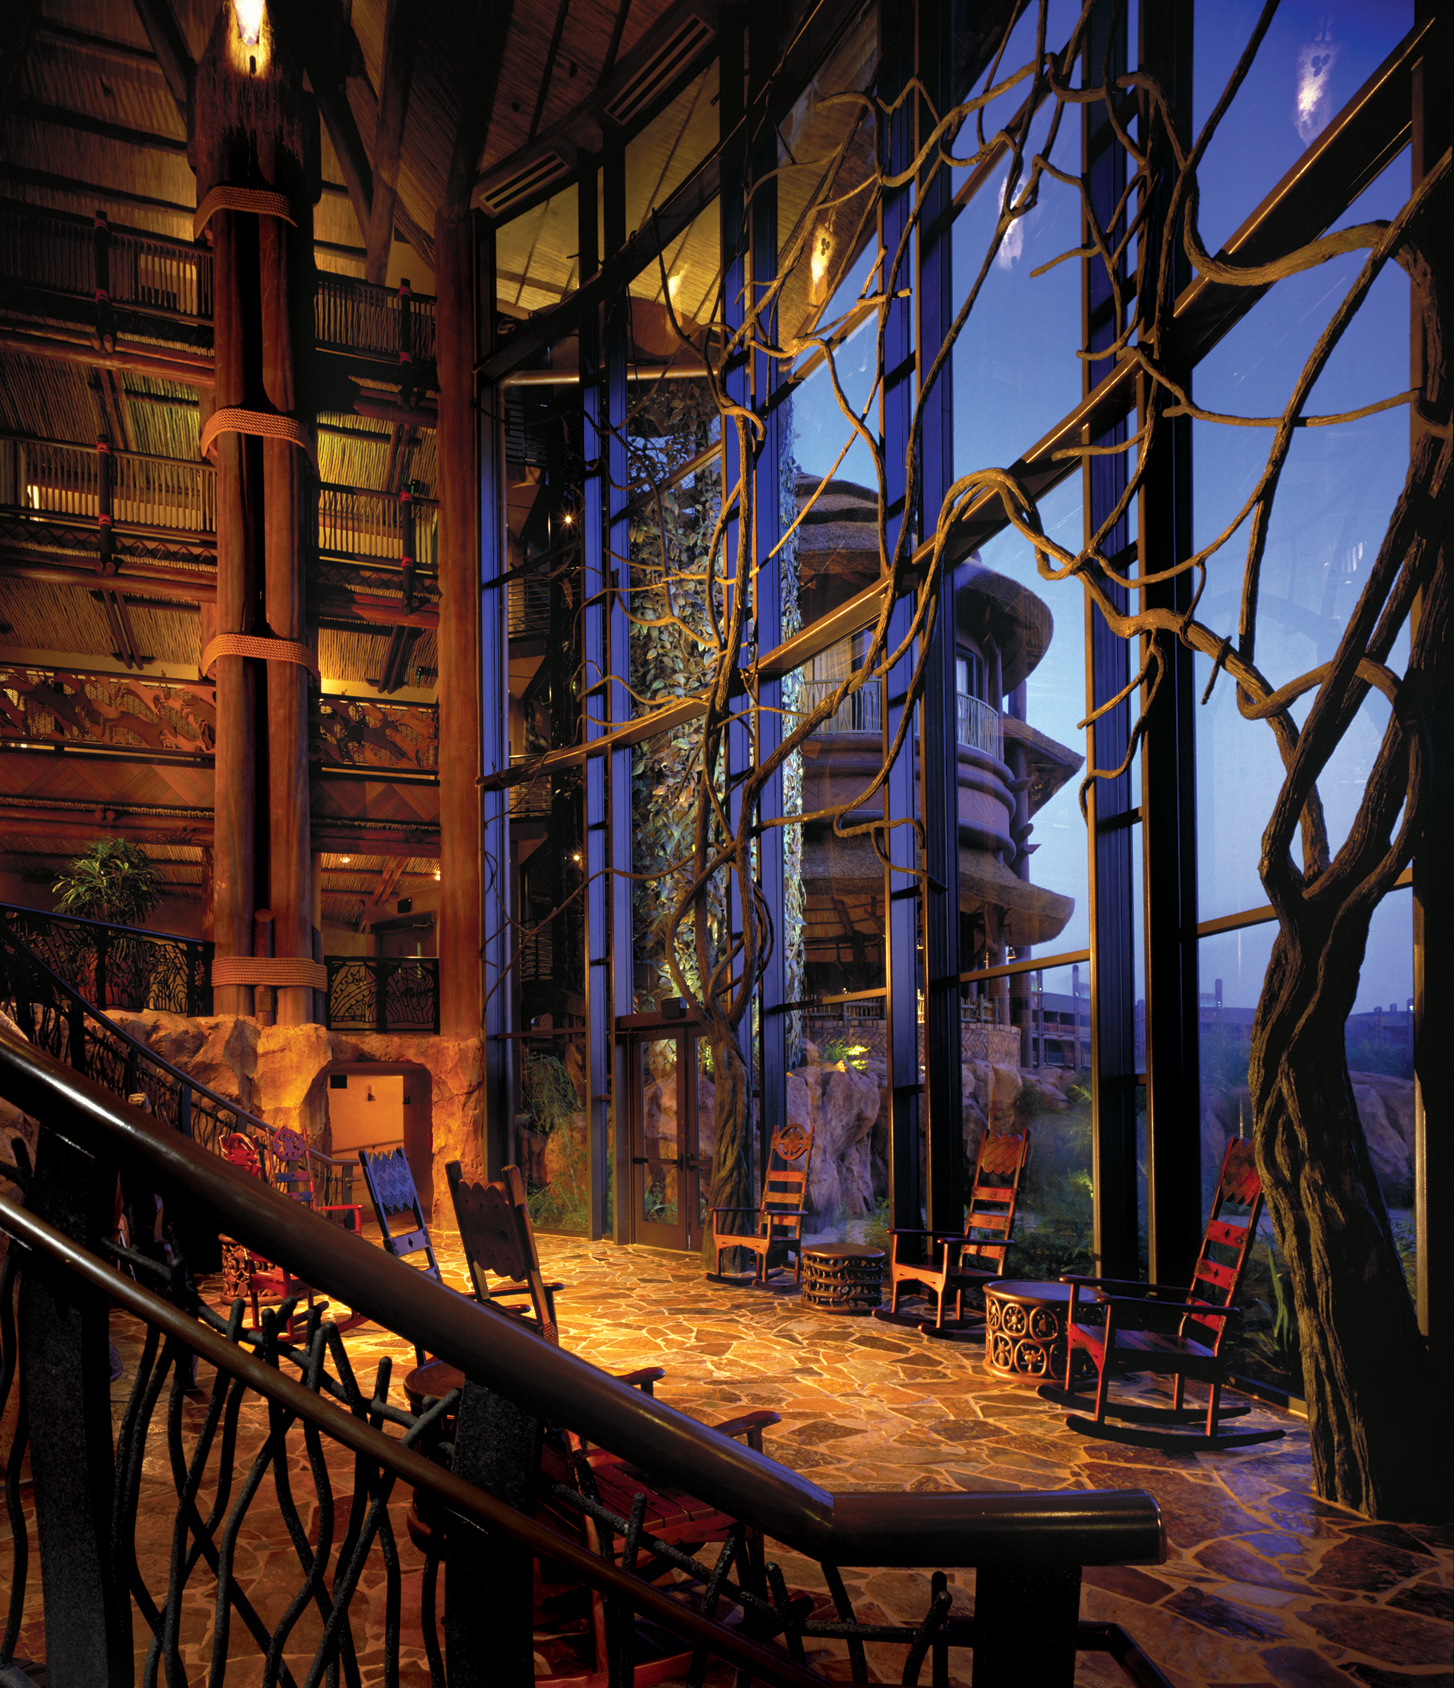 animal_kingdom_lodge_disney_orlando_florida_interior.jpg